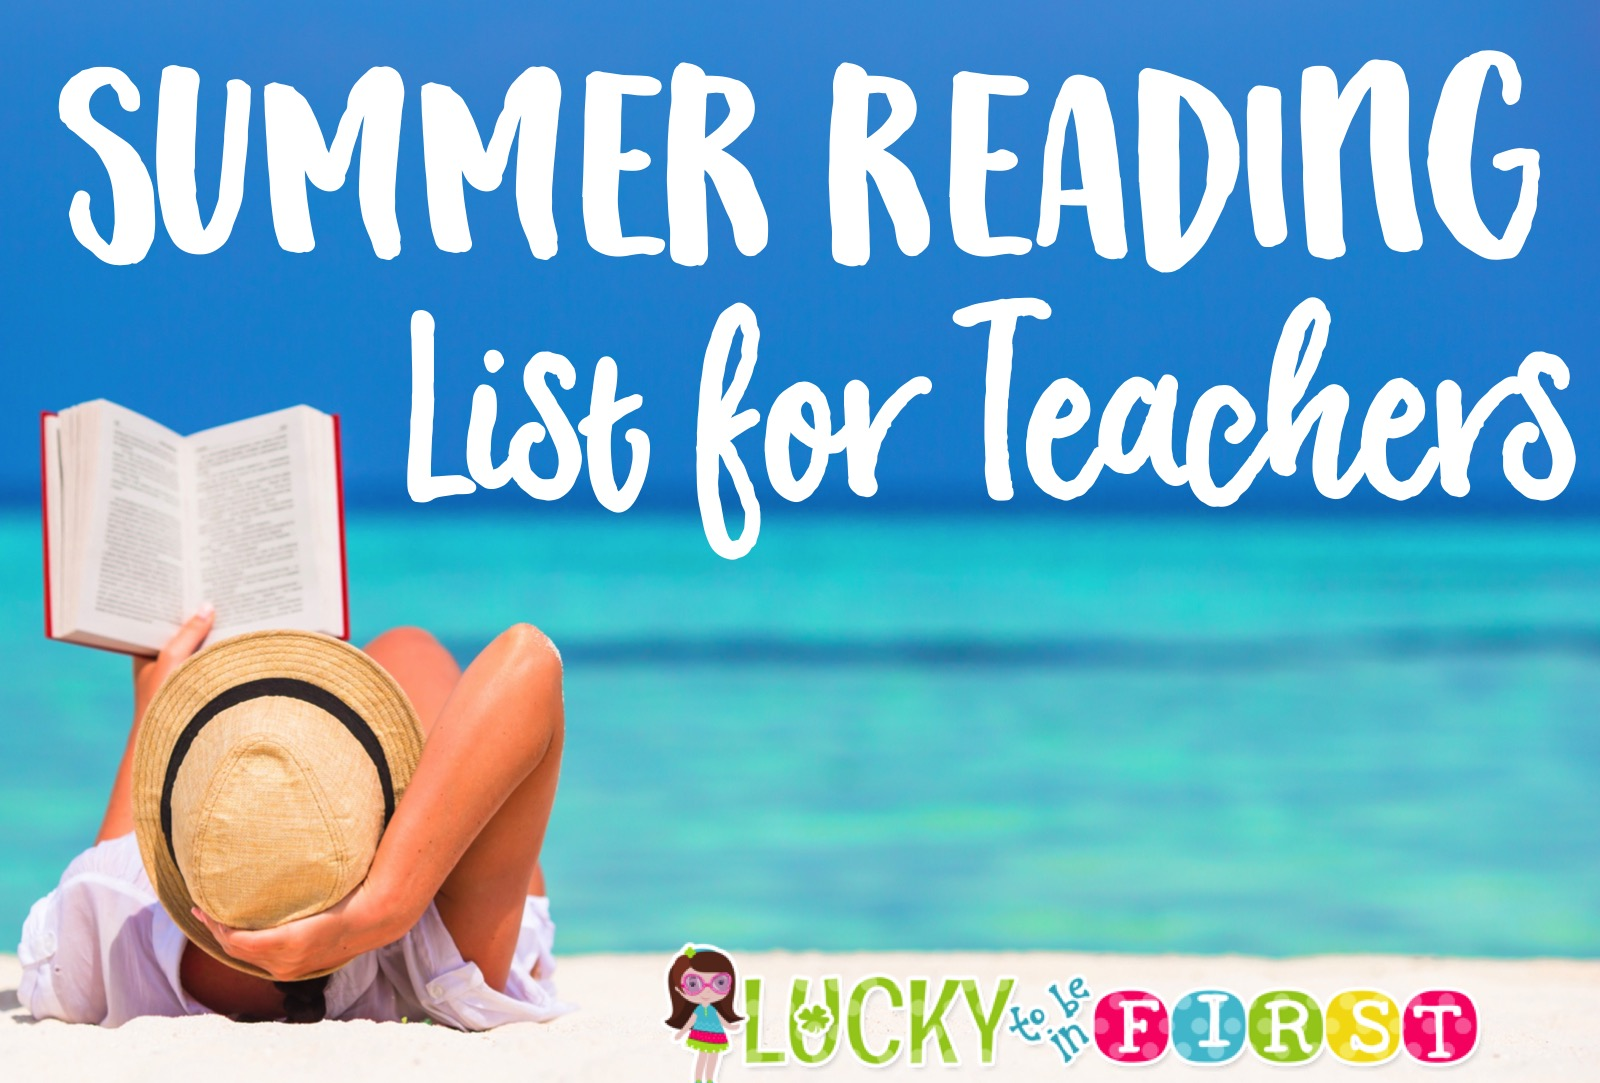 Summer Reading List For And By Teachers >> Summer Reading List For Teachers